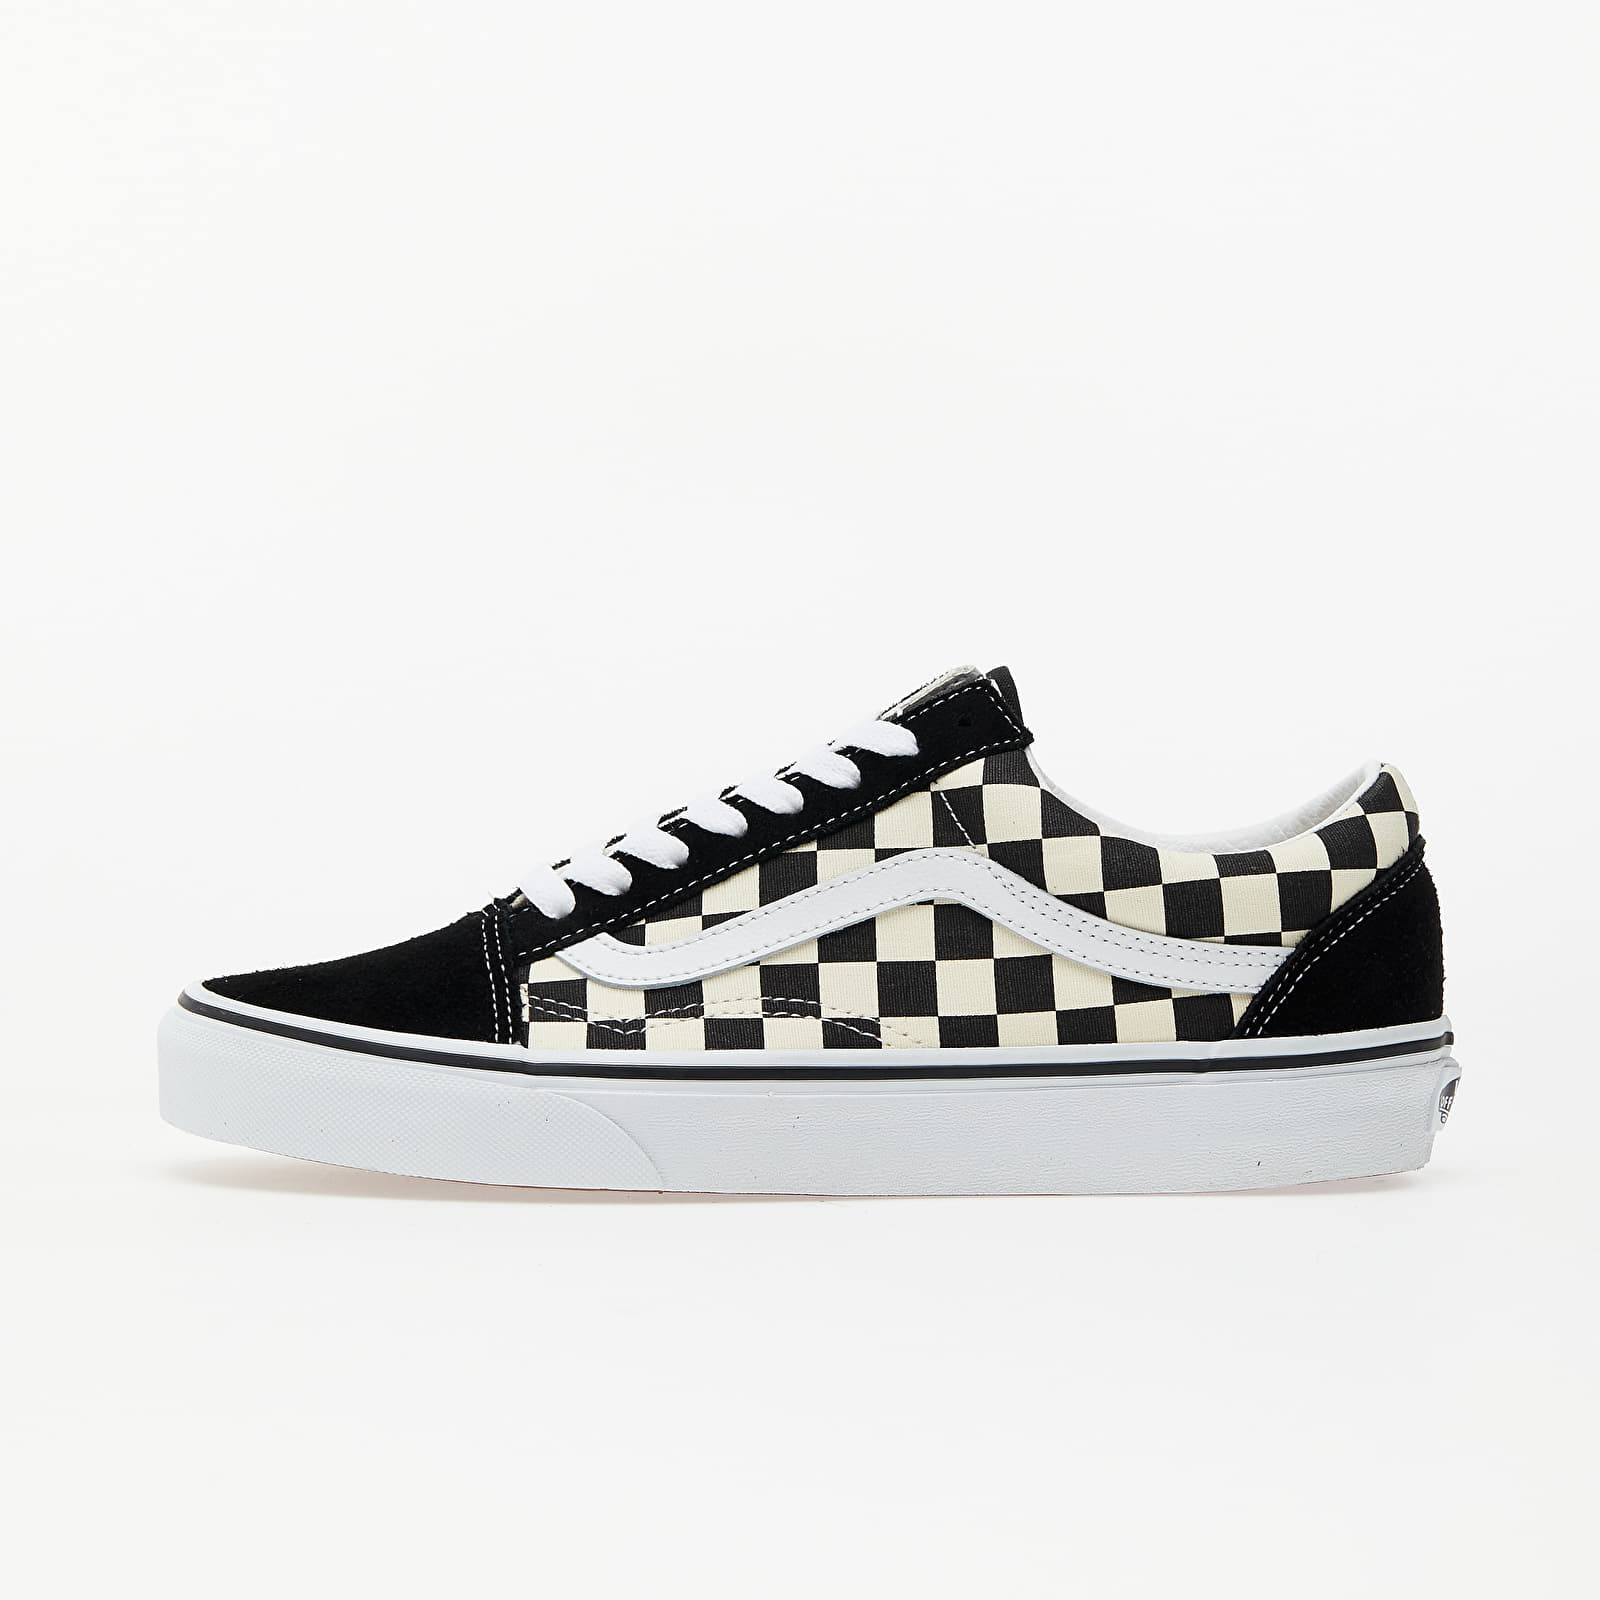 Ανδρικά παπούτσια Vans Old Skool (Primary Check) Blk/ White